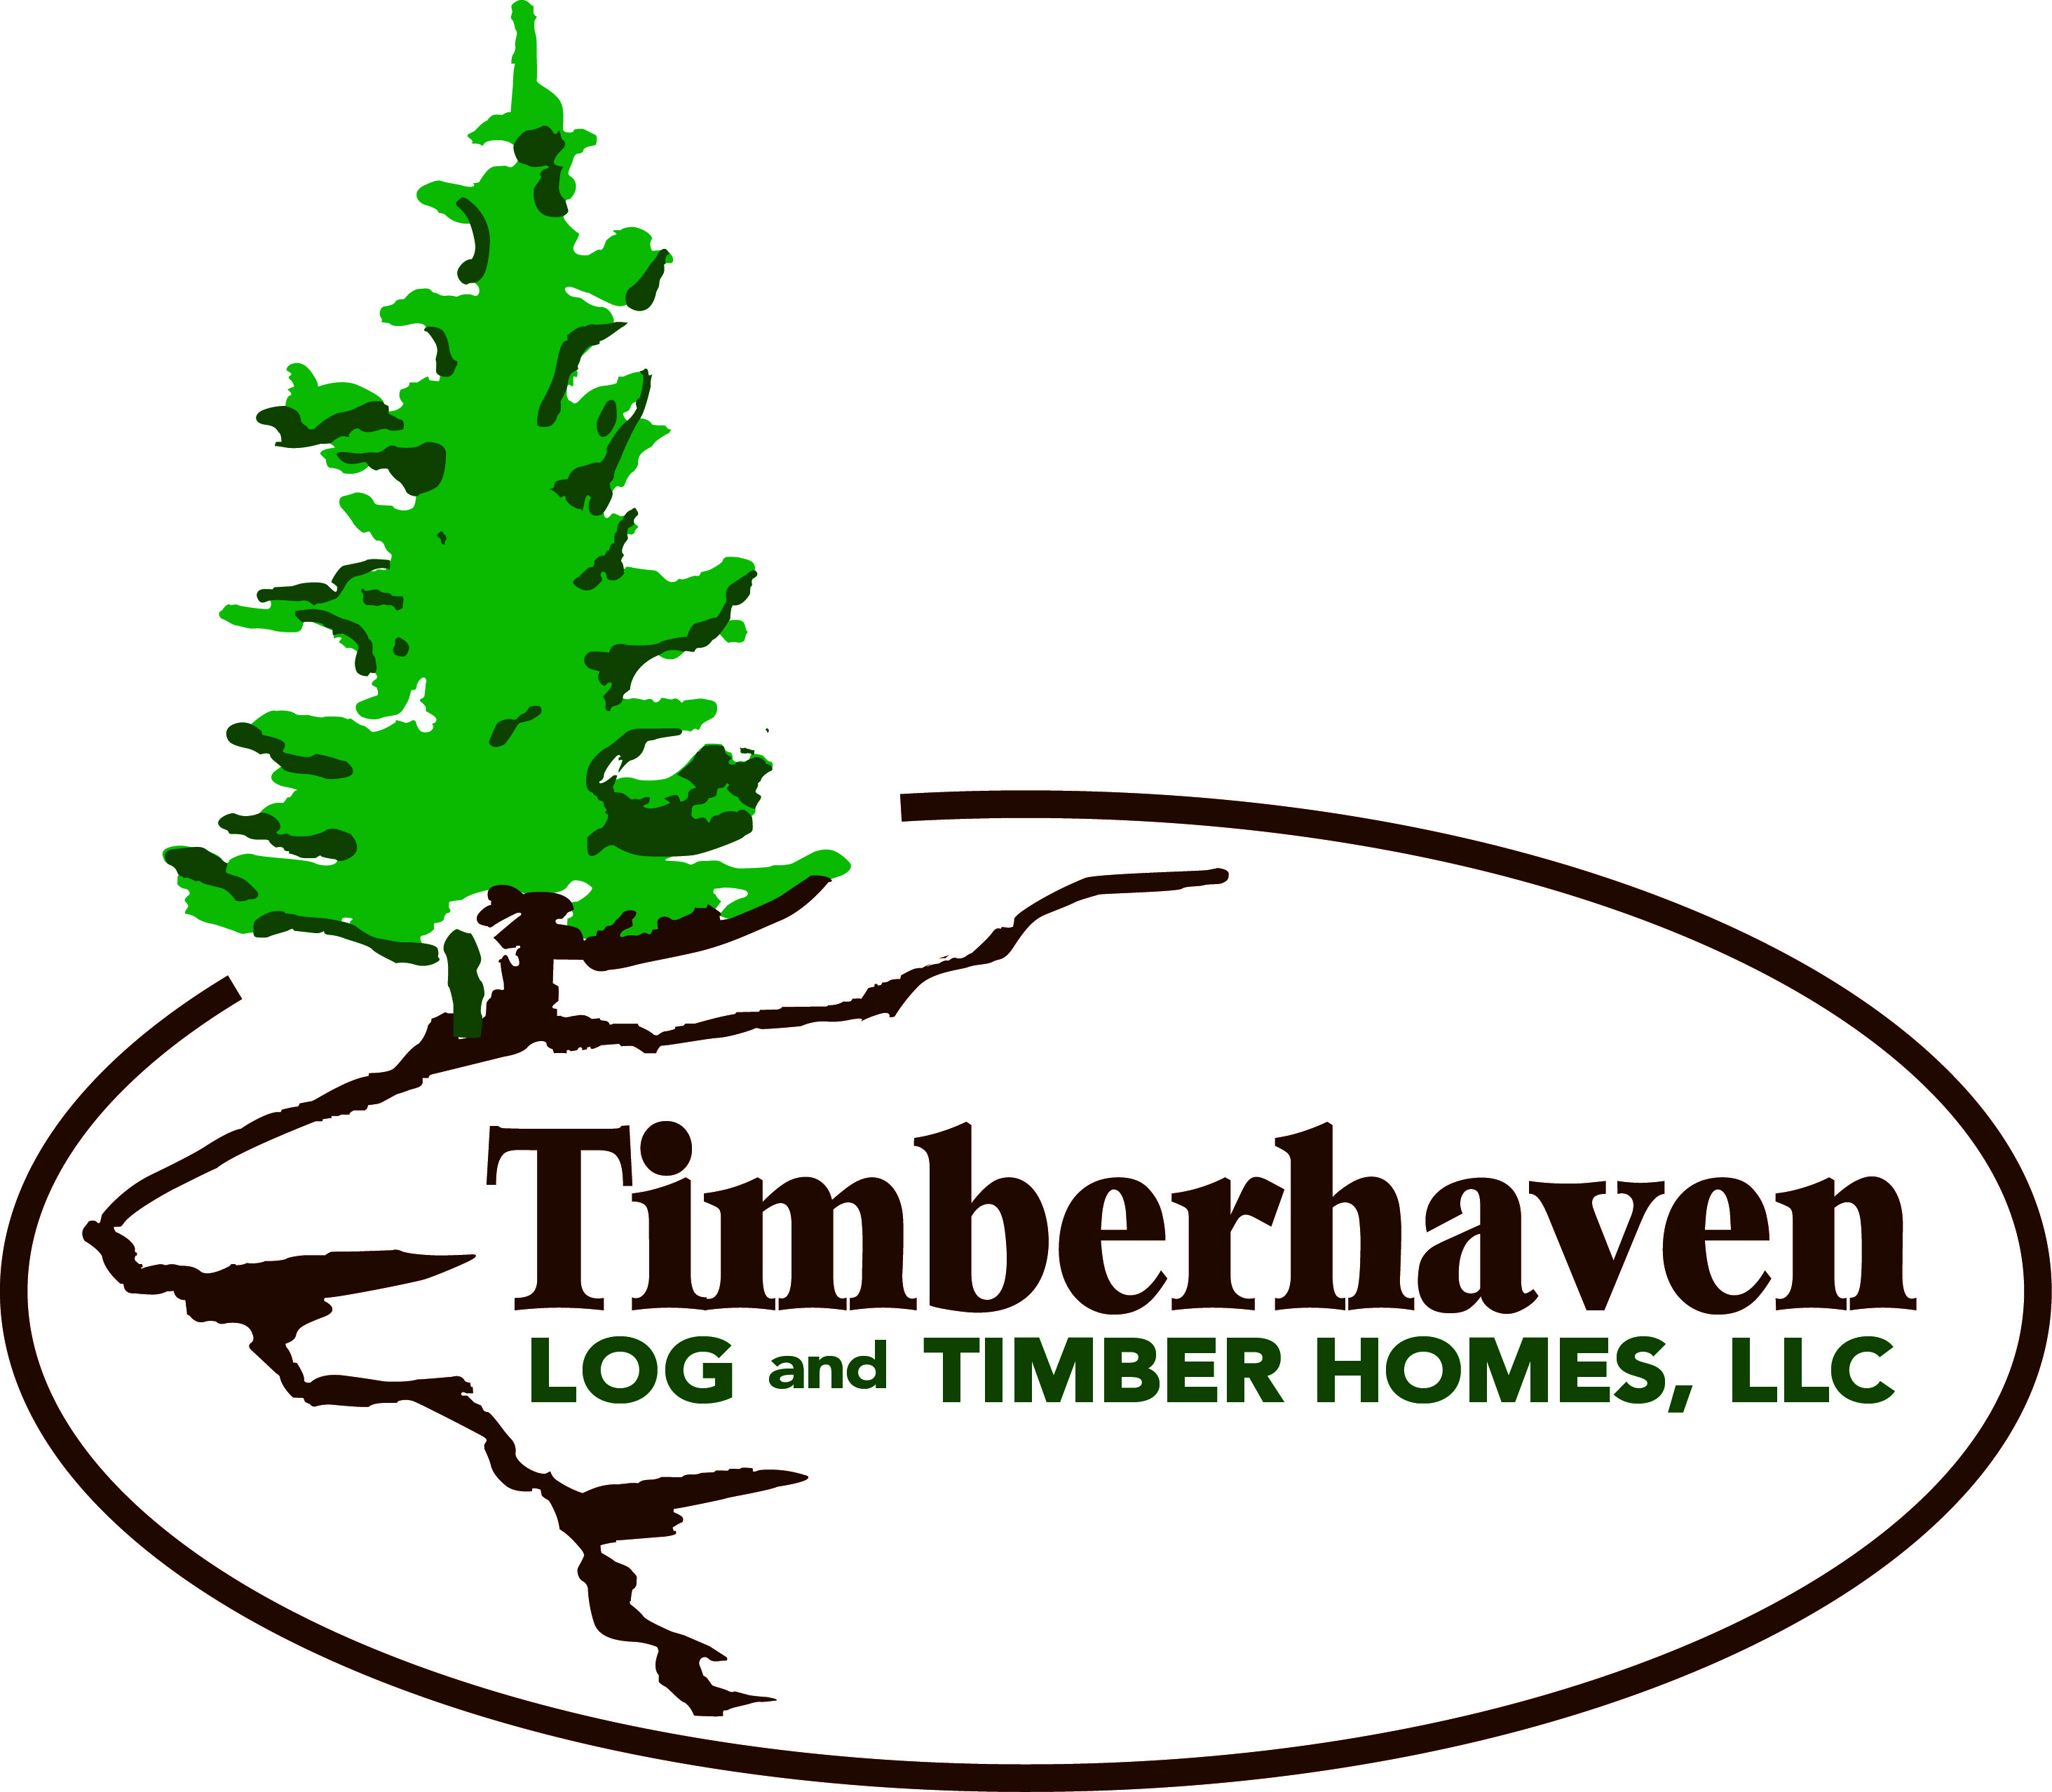 Post & Beam Tour by Timberhaven Log and Timber Homes